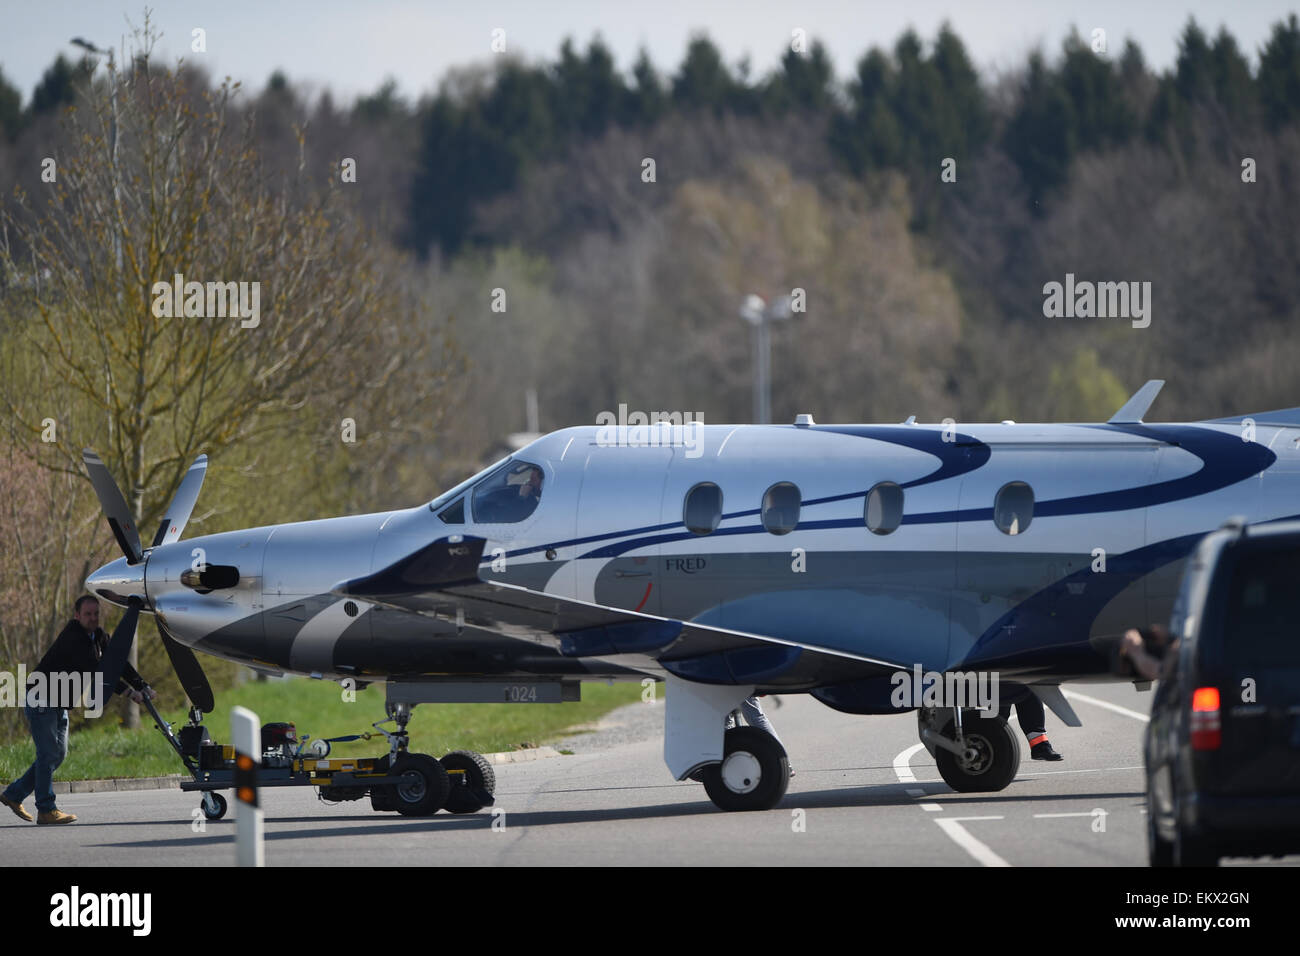 Messe Friedrichshein, Germany. 13th Apr, 2015. A PC-12, a single-engine turboprop aircraft produced by Swiss manufacturer - Stock Image